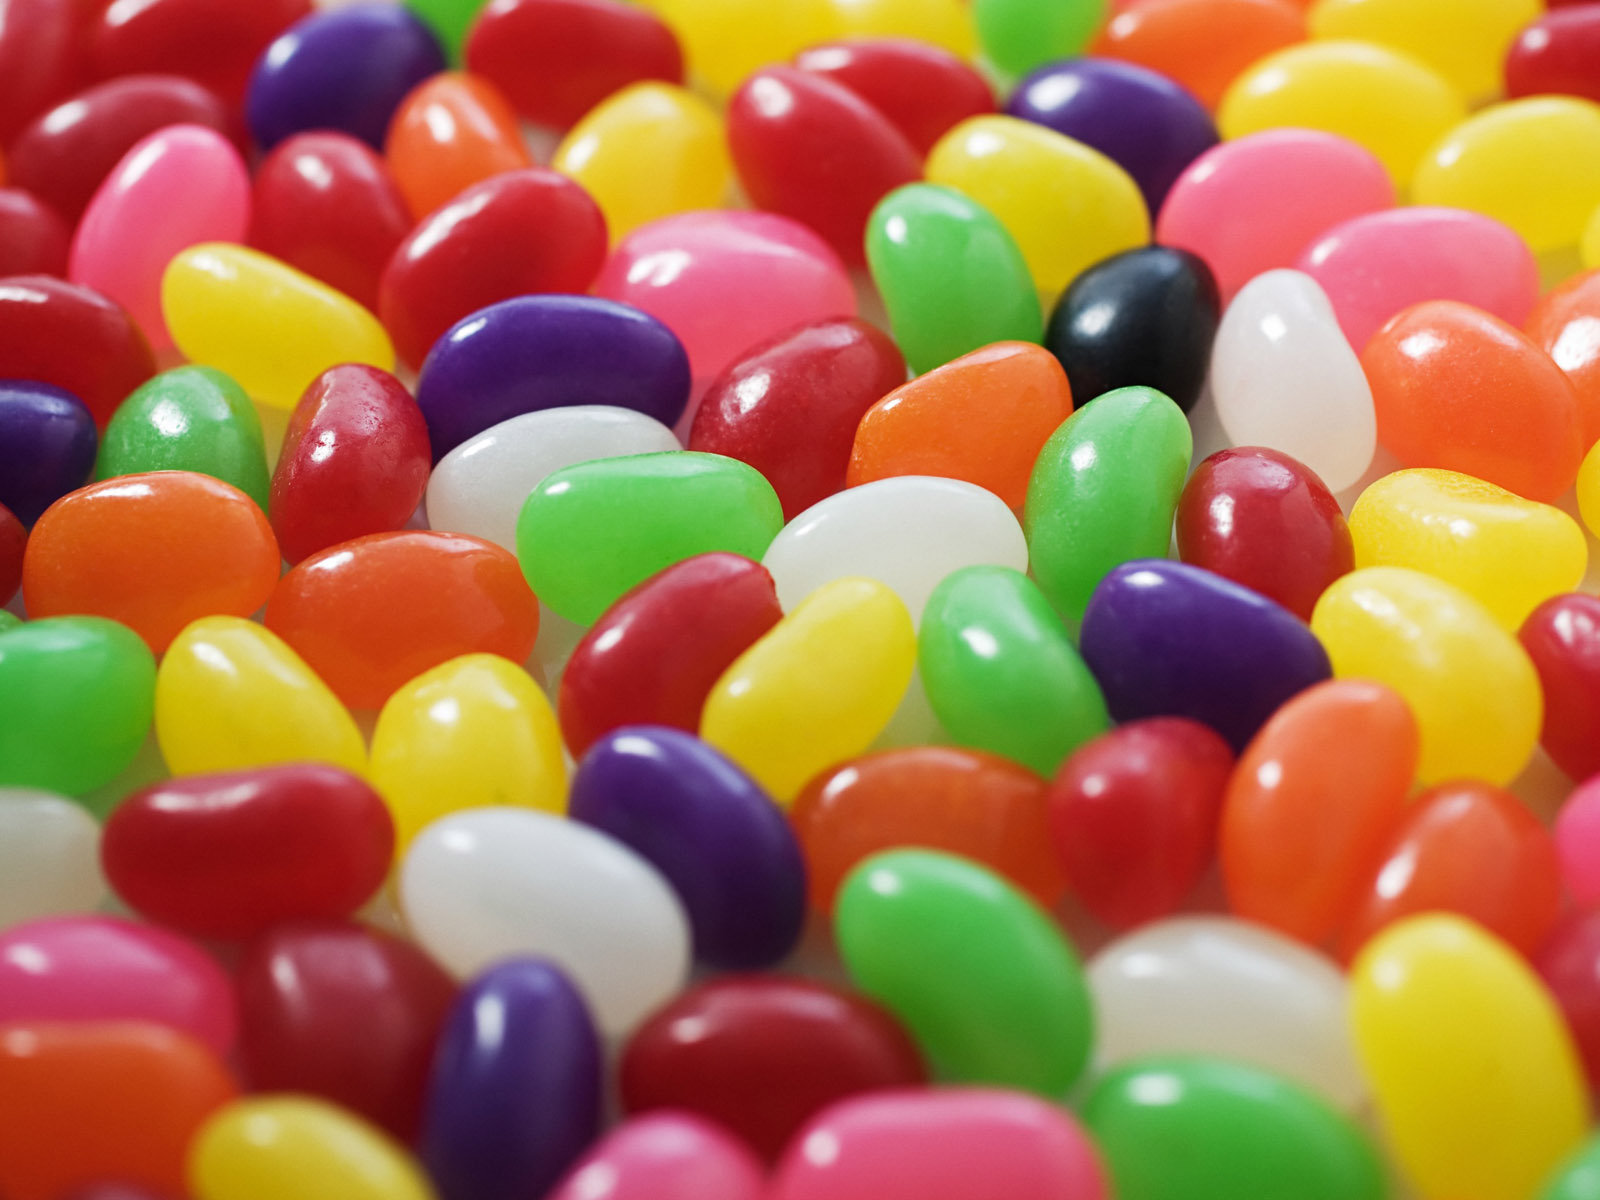 Some sweet candy jelly beans.